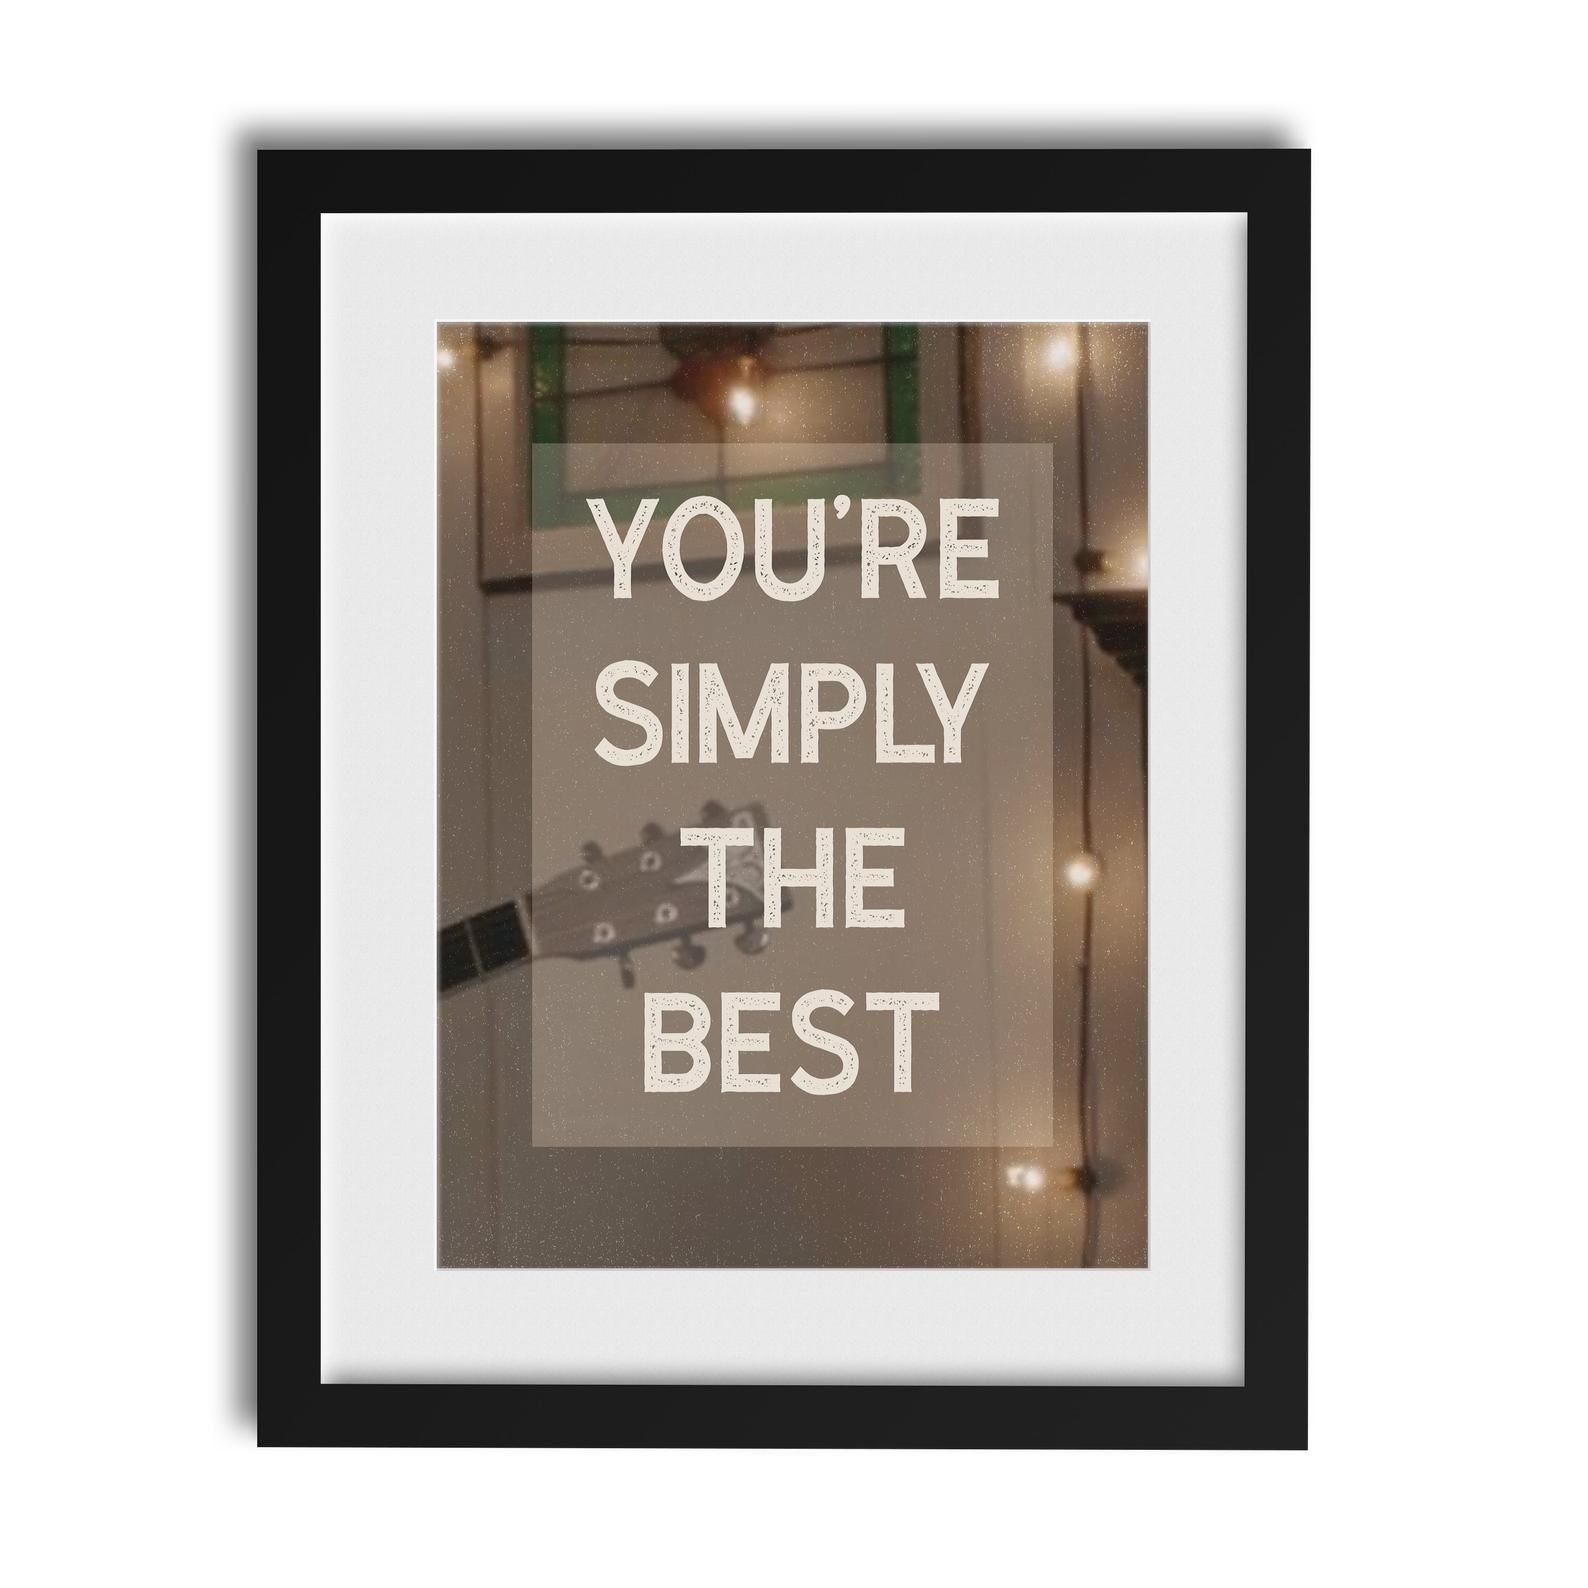 Printed Wall Decor Gifts Wall Art Quotes And Sayings Etsy In 2020 Wall Art Quotes Wall Prints Art Quotes